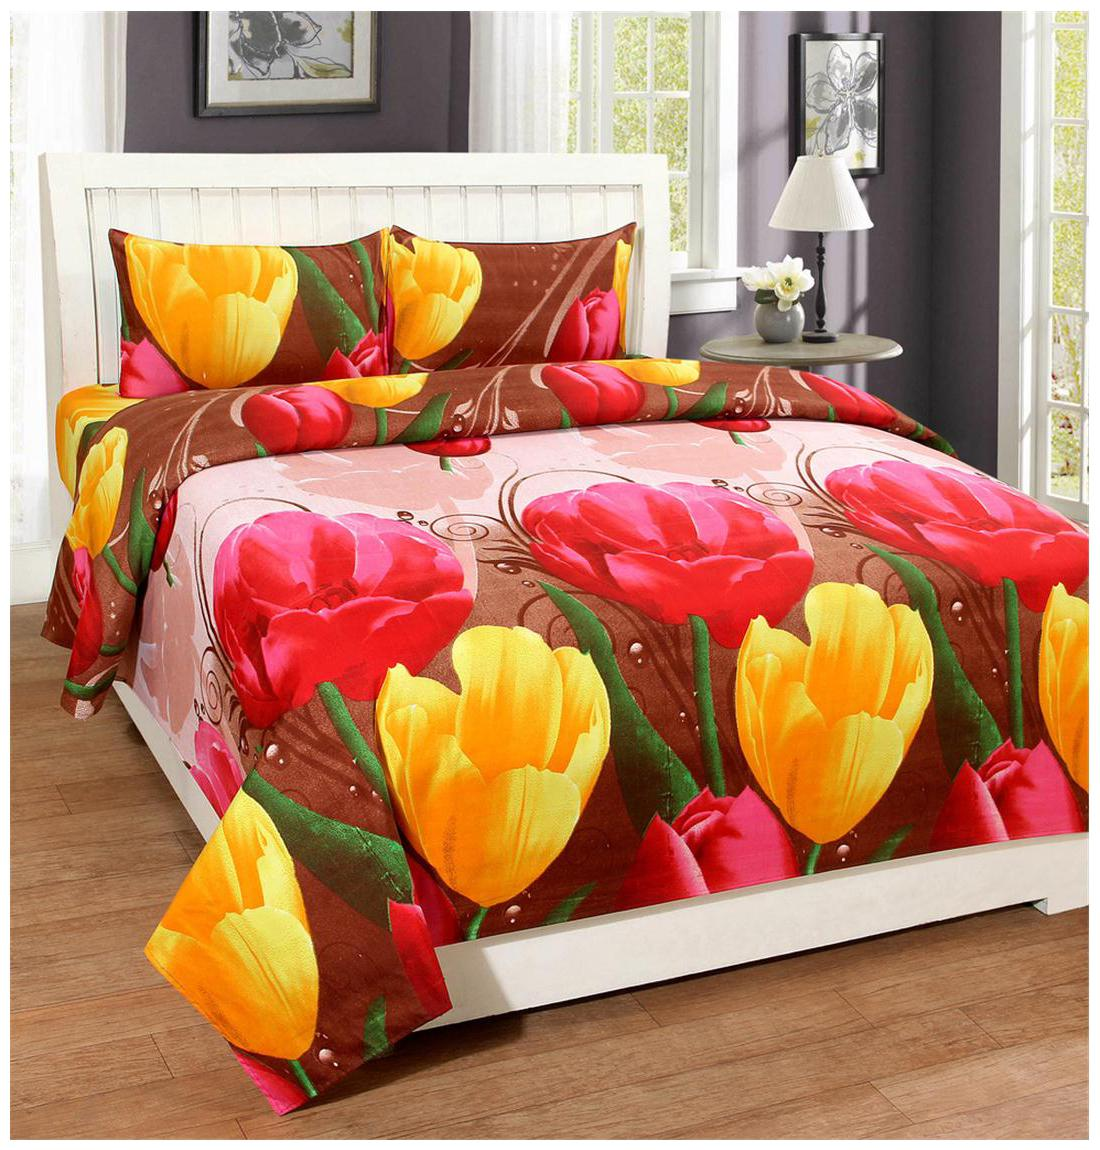 Trendz Home Furnishing Printed Double Bedsheet With 2 Pillow Covers